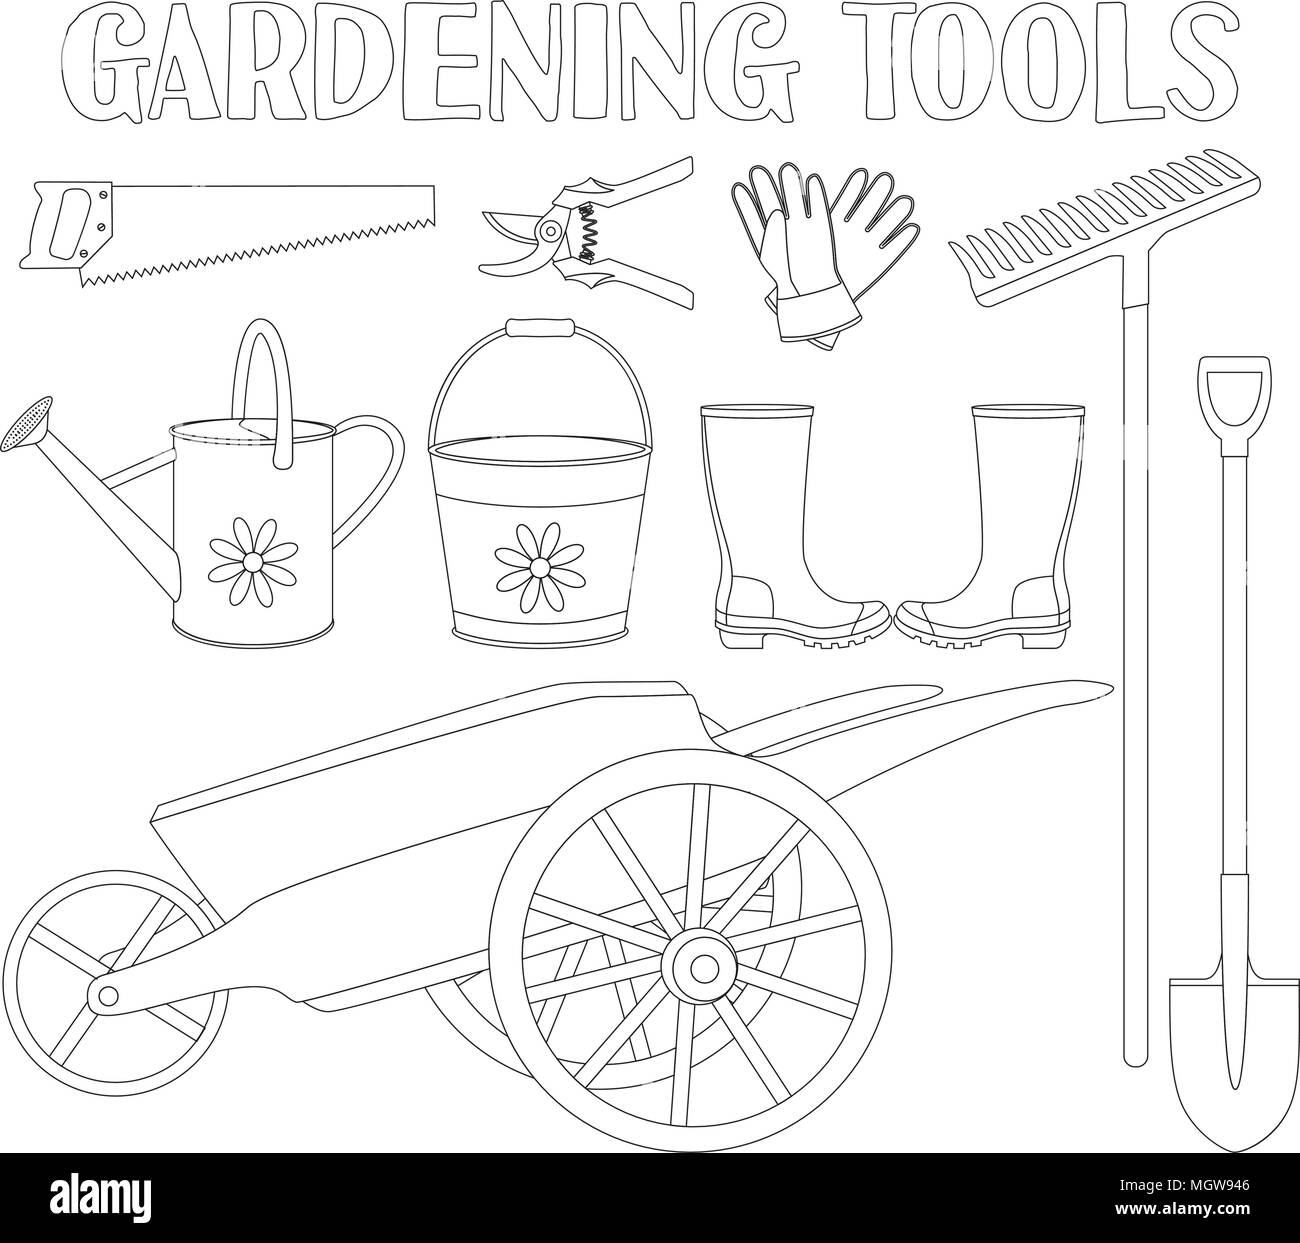 Black And White Garden Tool Set 9 Elements Coloring Book Page For Adults Kids Gardening Vector Illustration Gift Card Certificate Stick